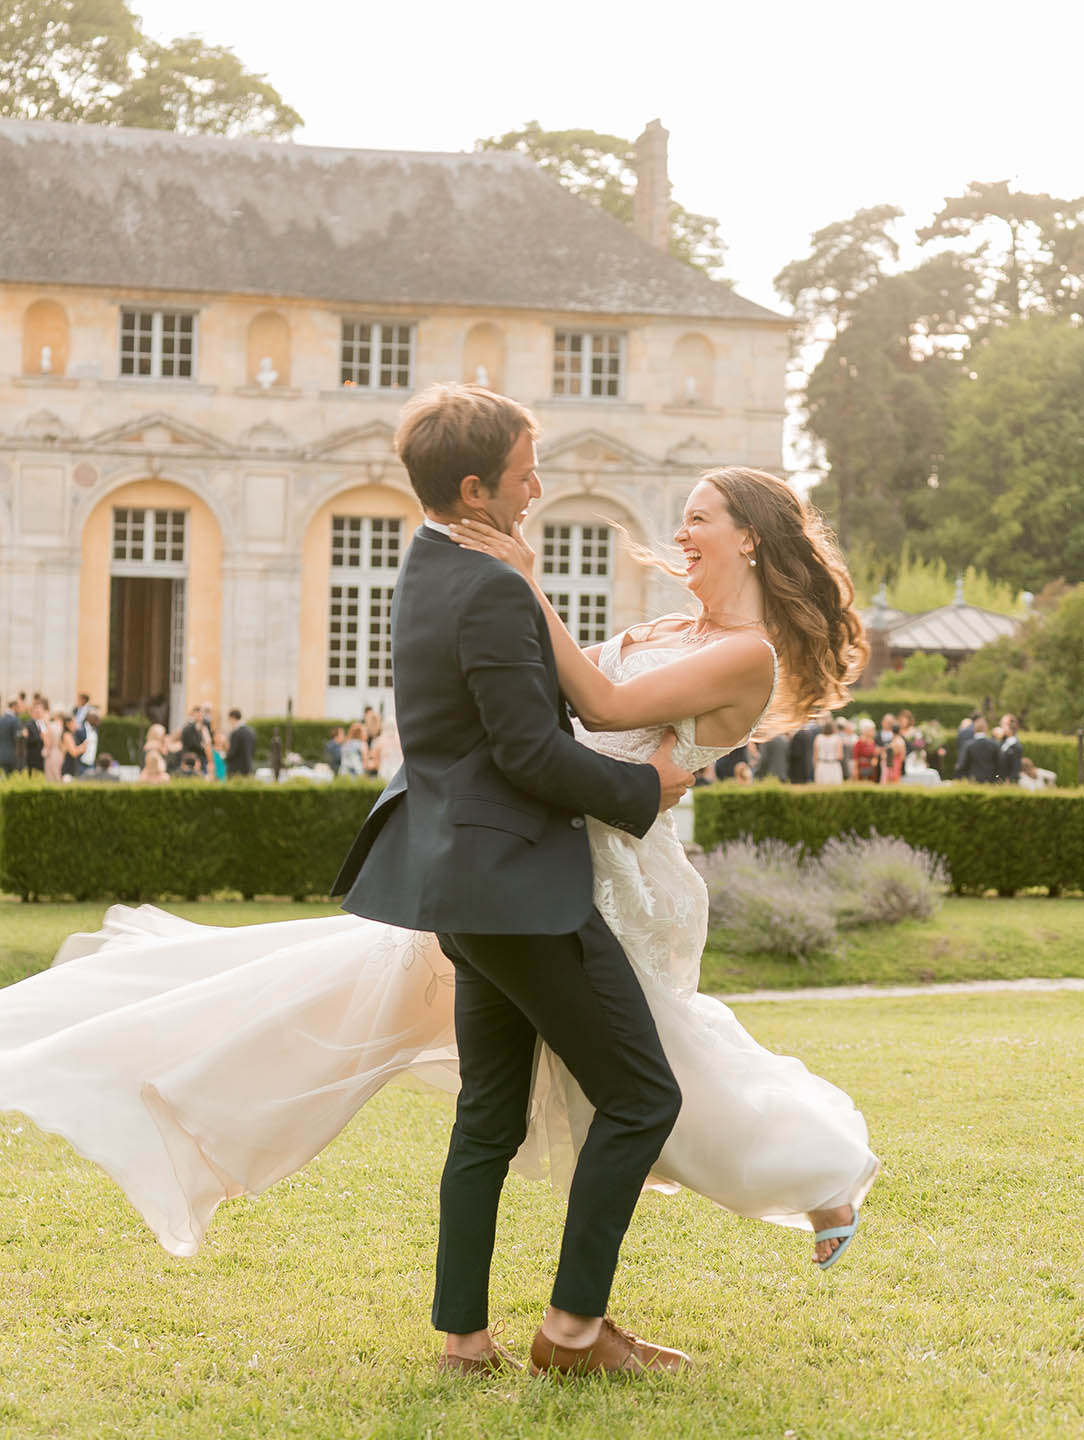 chateau de vallery bride and groom spinning on lawn